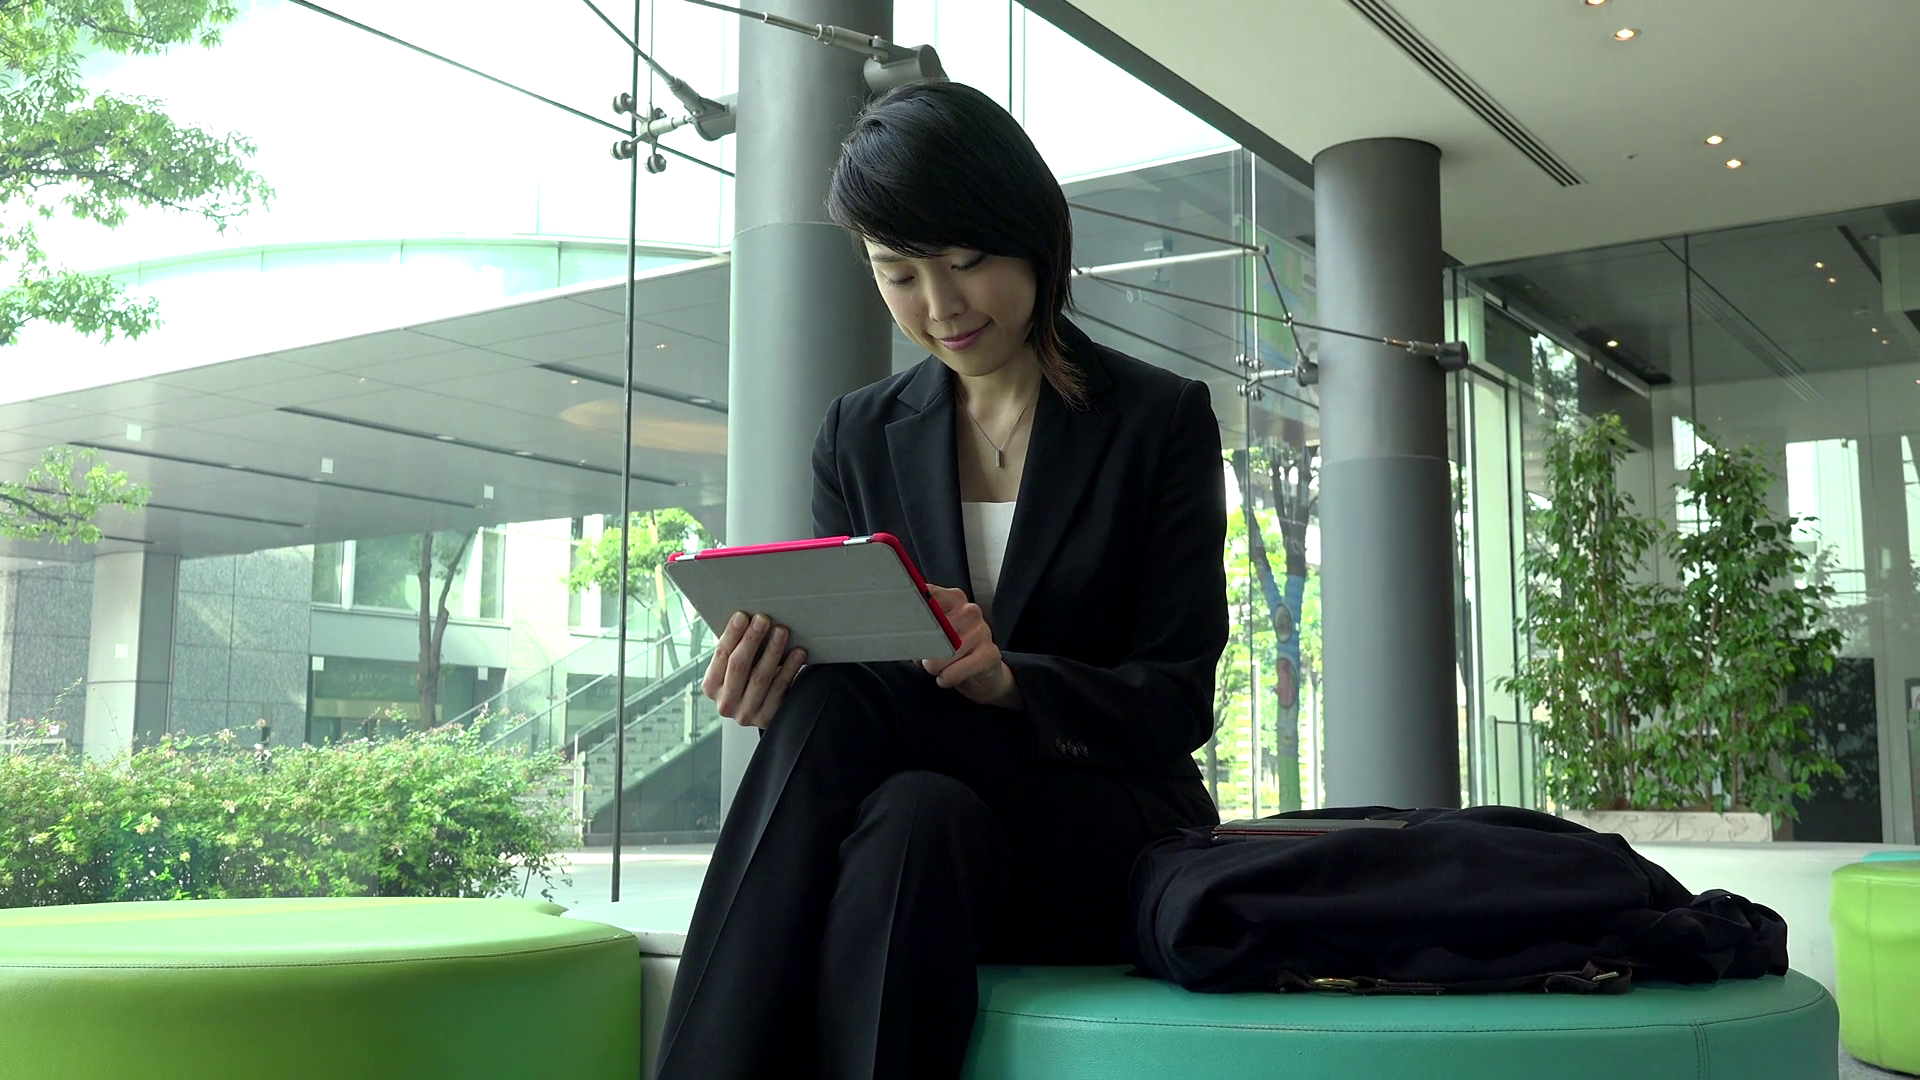 business-travel-people-working-in-hotel-lobby-office-building-japanese-female-manager-asian-businesswoman-girl-woman-at-work-using-ipad-digital-tablet-pc-computer-for-email-internet_s8kv6j38x_thumbnail-full01.png